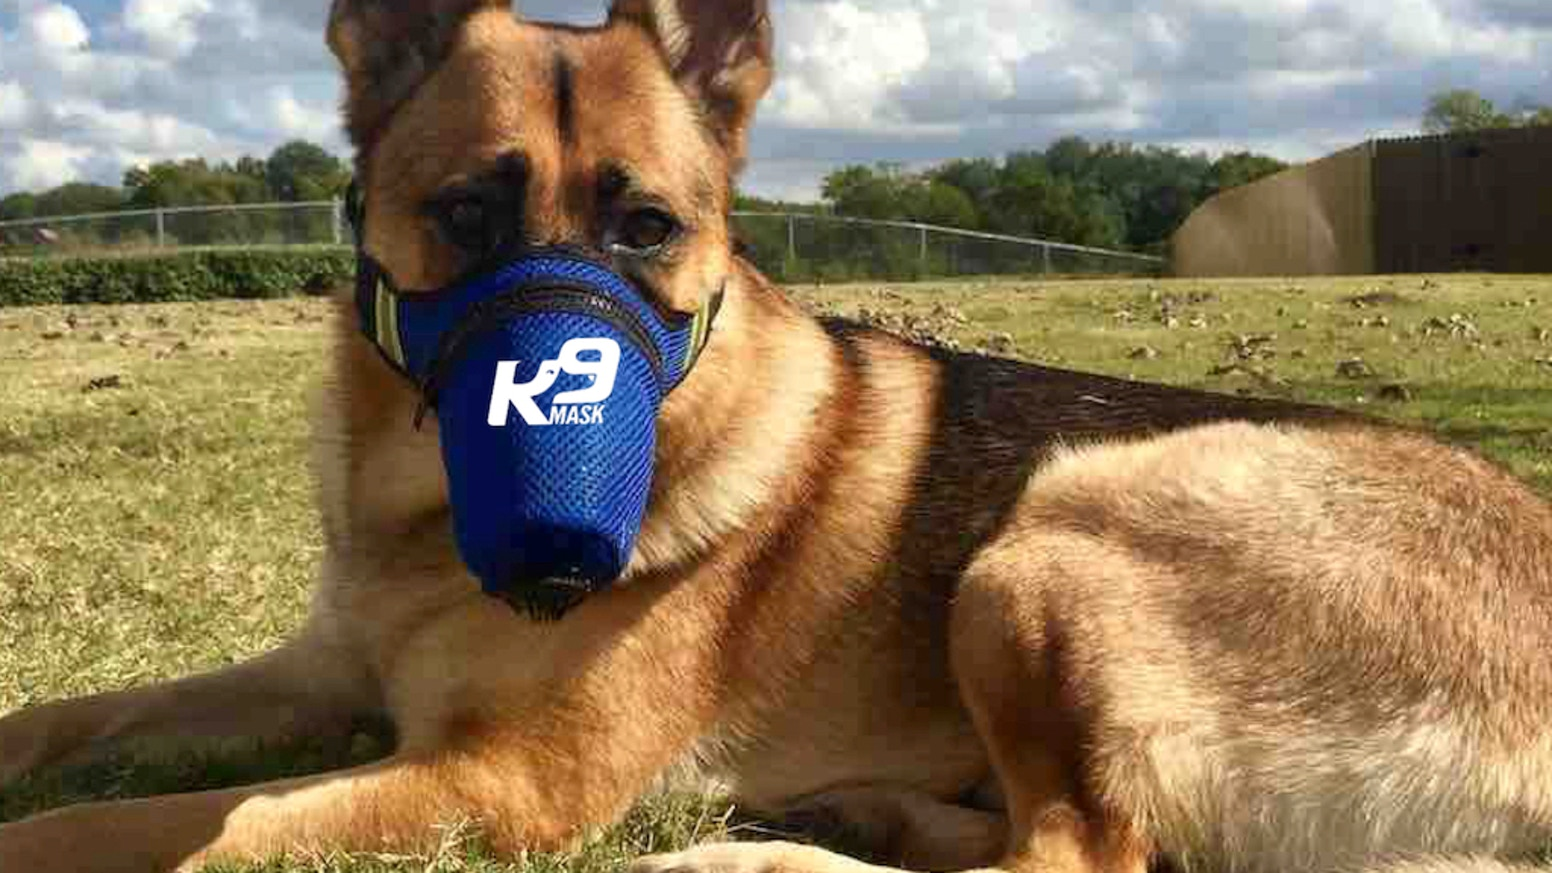 Protecting your dog from air pollution one breath at a time. Extreme air protection from smoke, smog, chemicals, dust, and toxins.